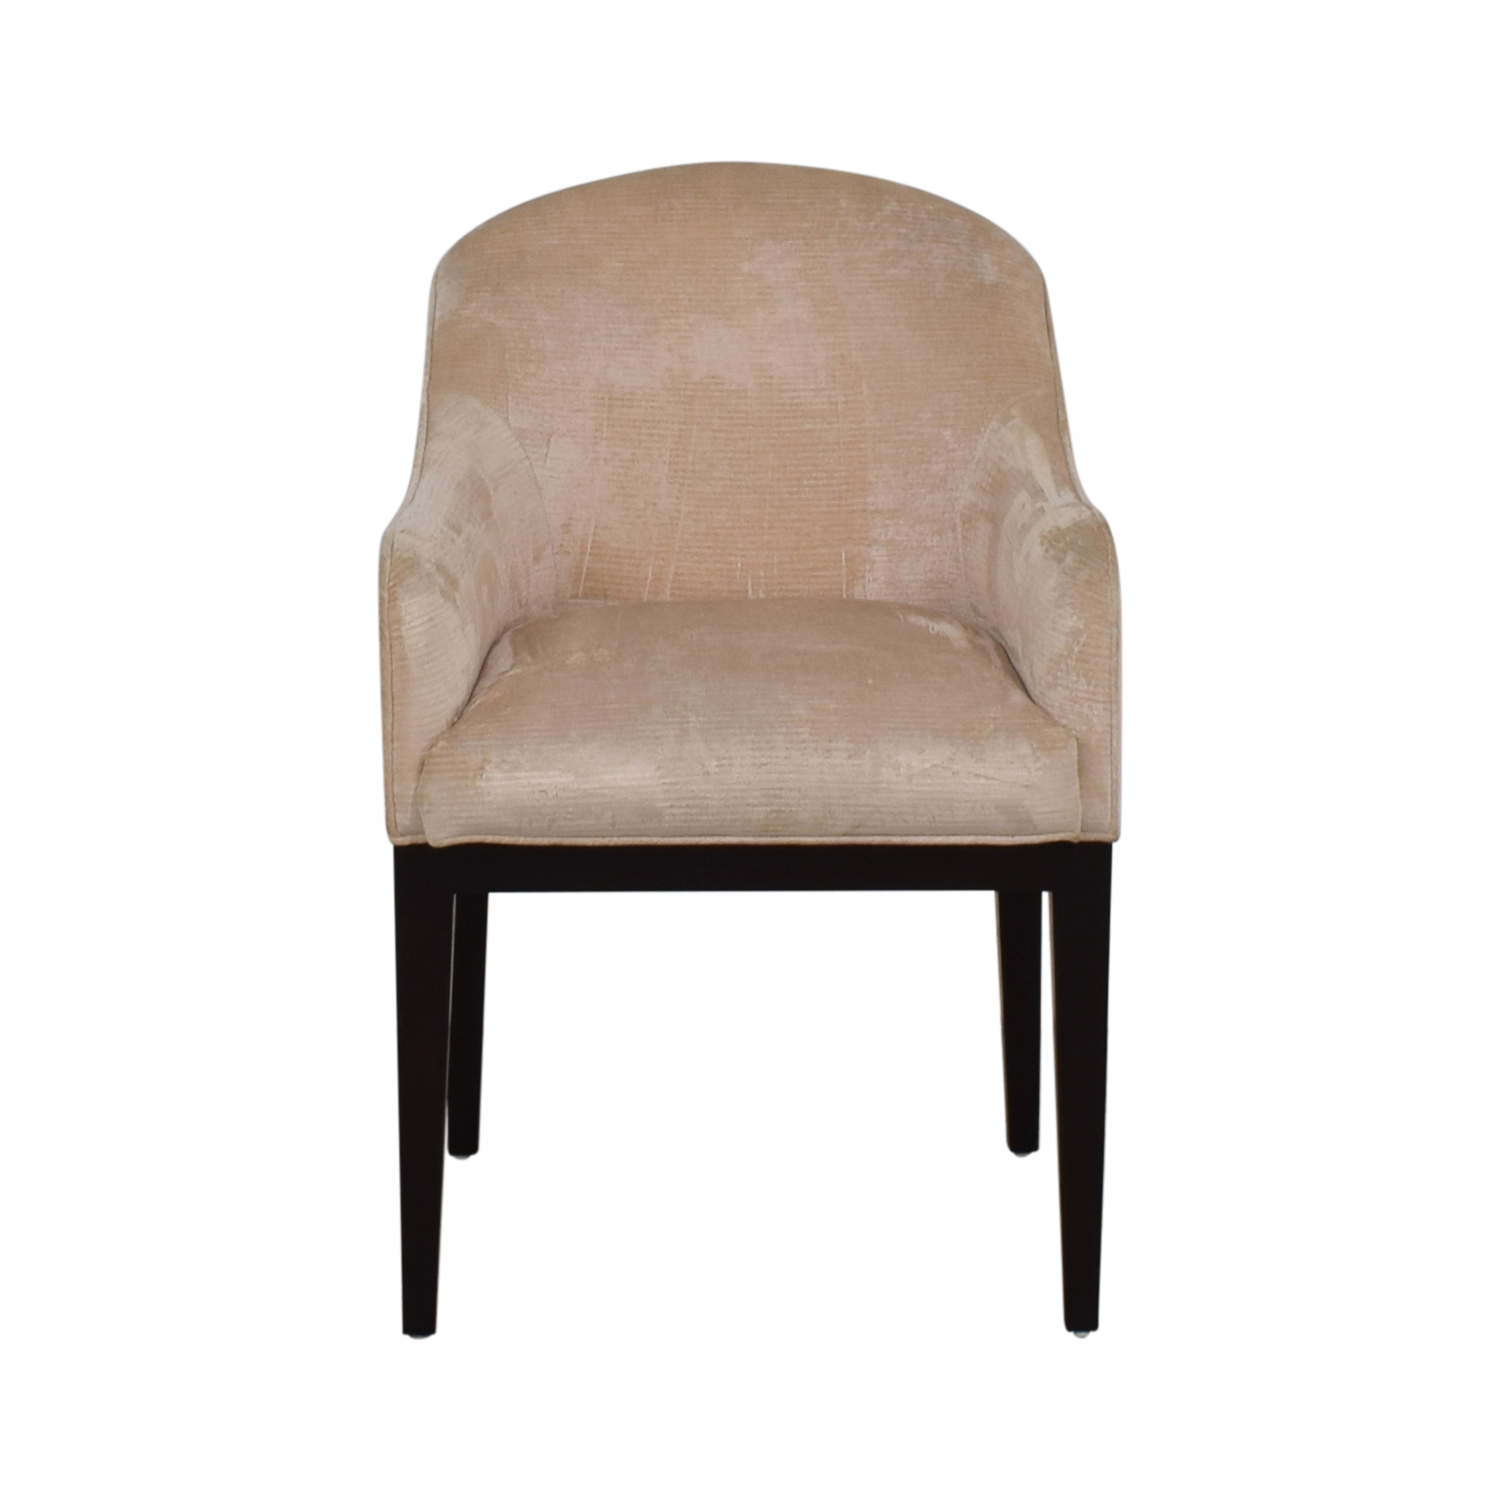 Furniture Masters Furniture Masters Cream Accent Armchair discount